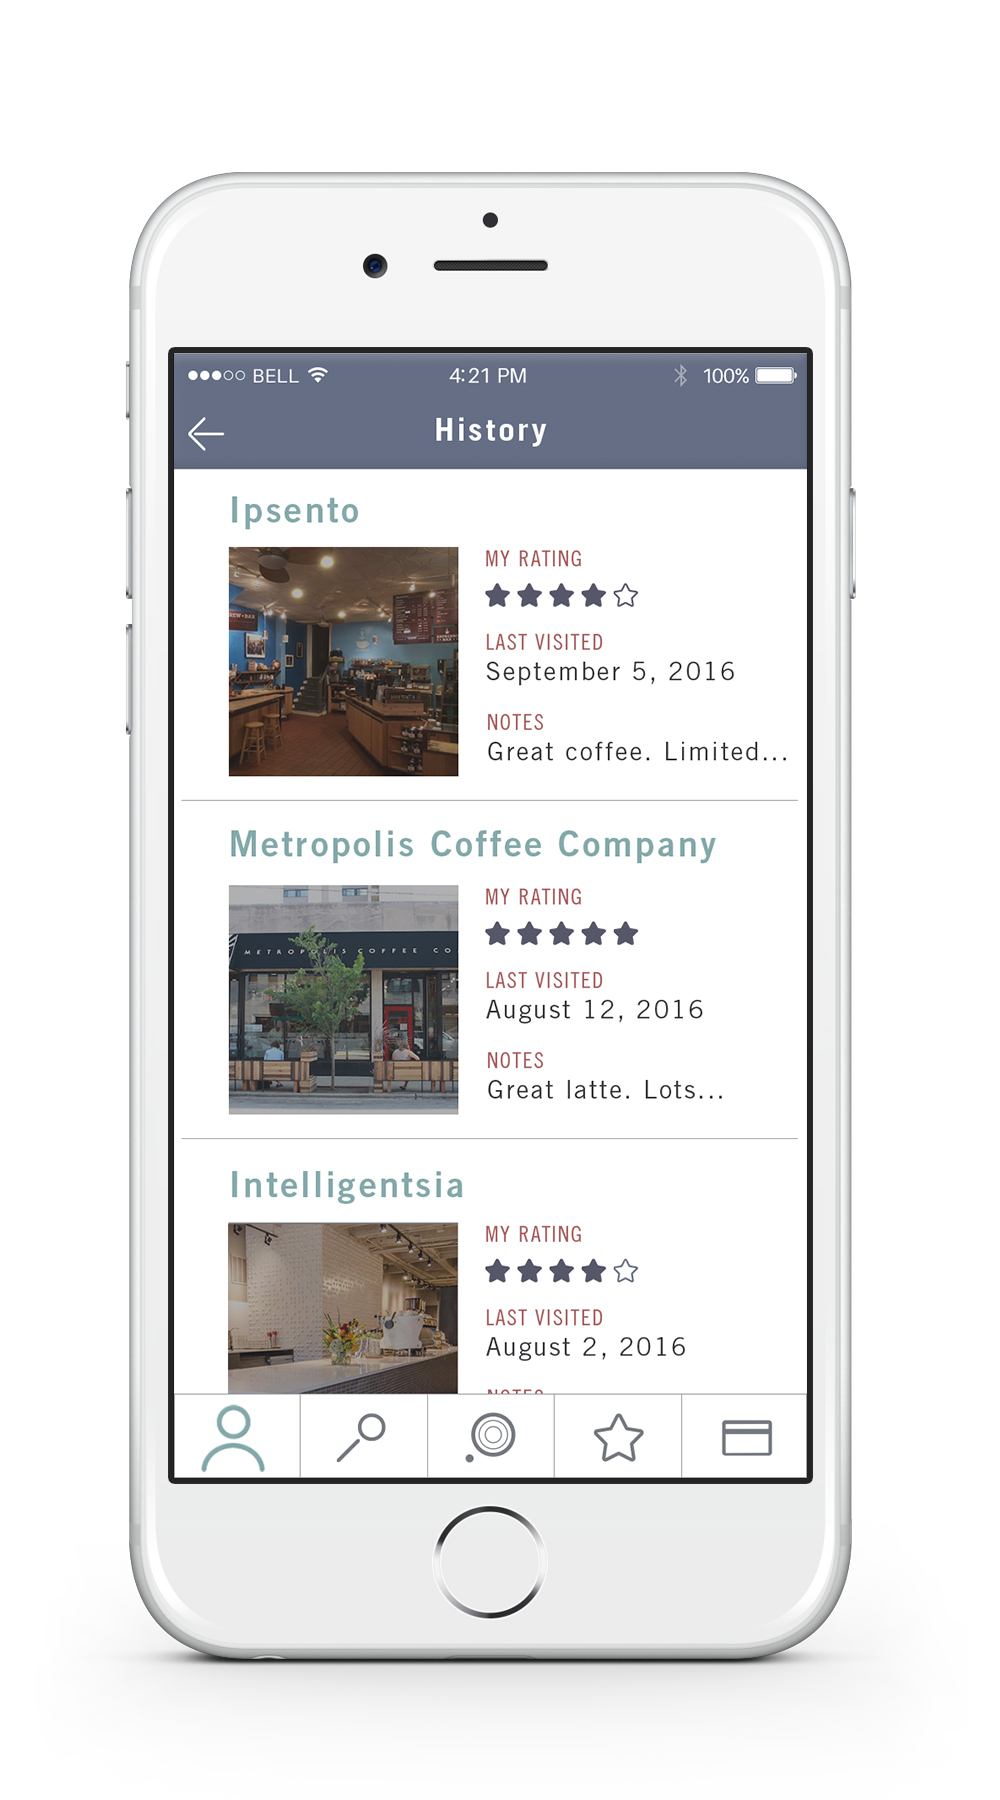 History    —   The history screen lists all locations the user has visited. The app uses a geo locater to place where the user has been as well as keep track of how many people are at a location.